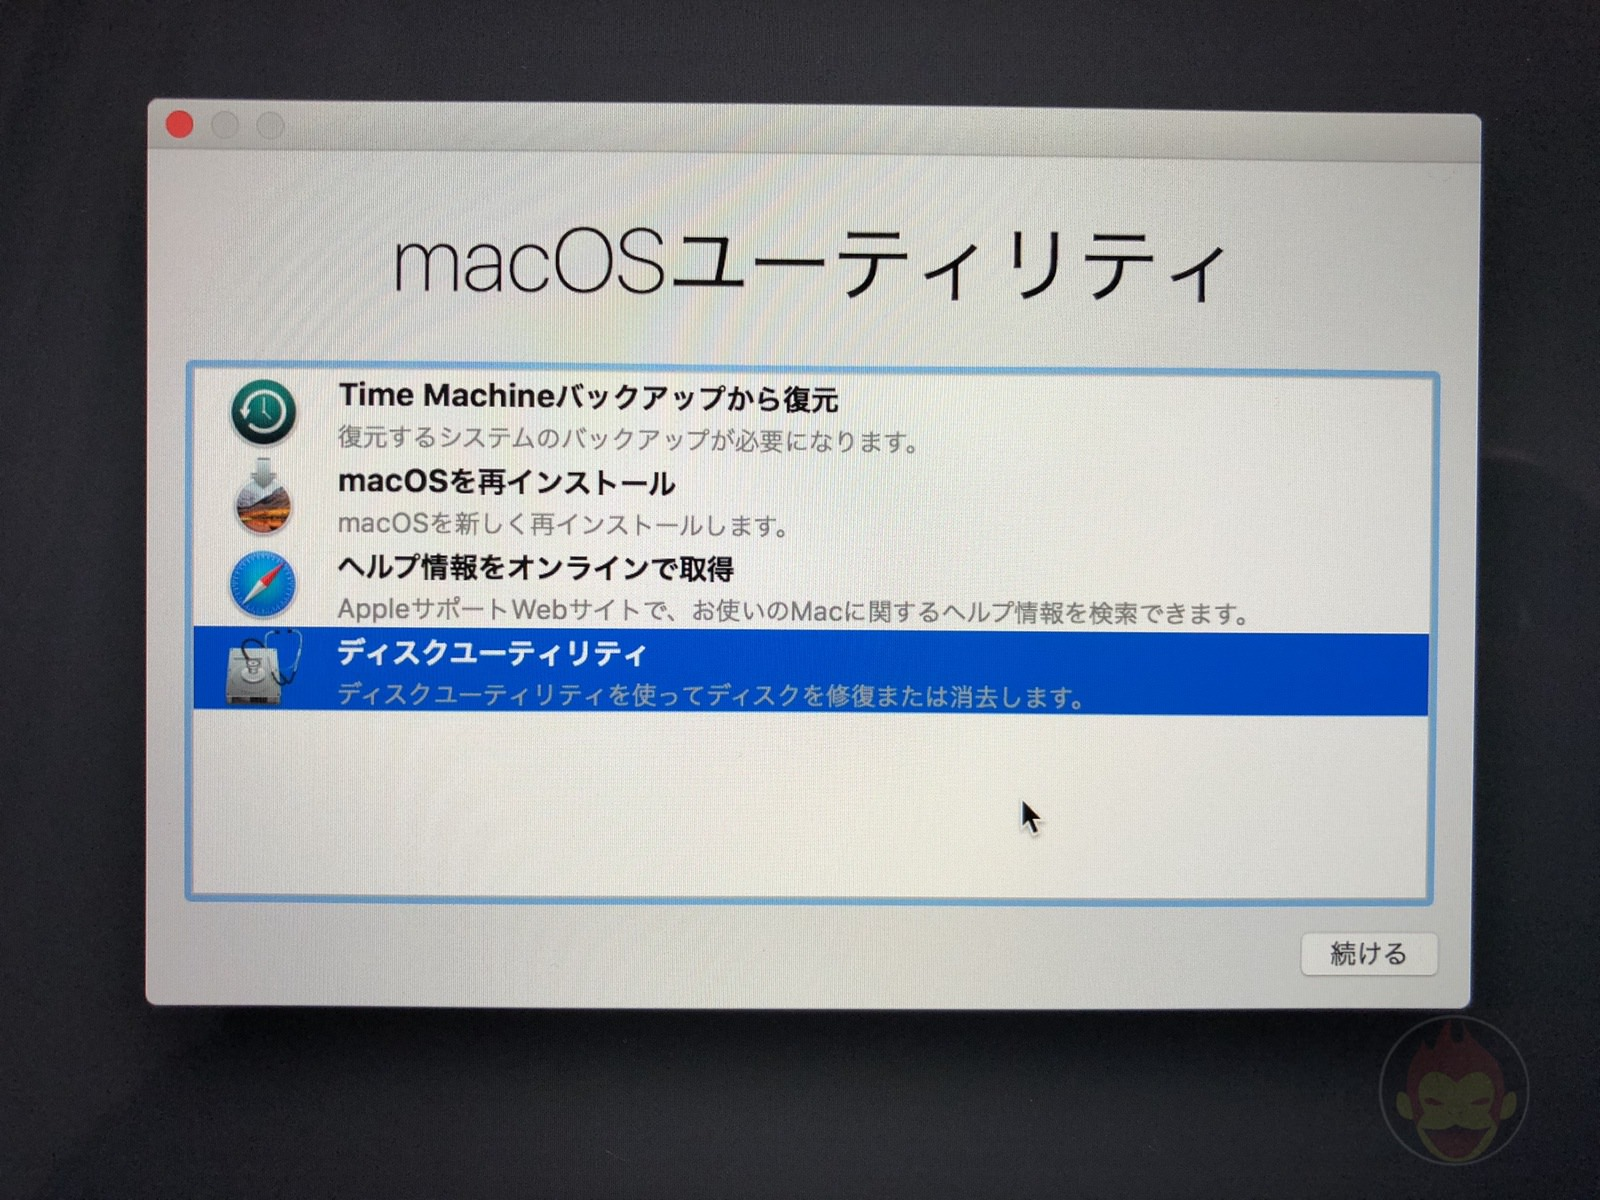 How to reset macOS on Mac 62